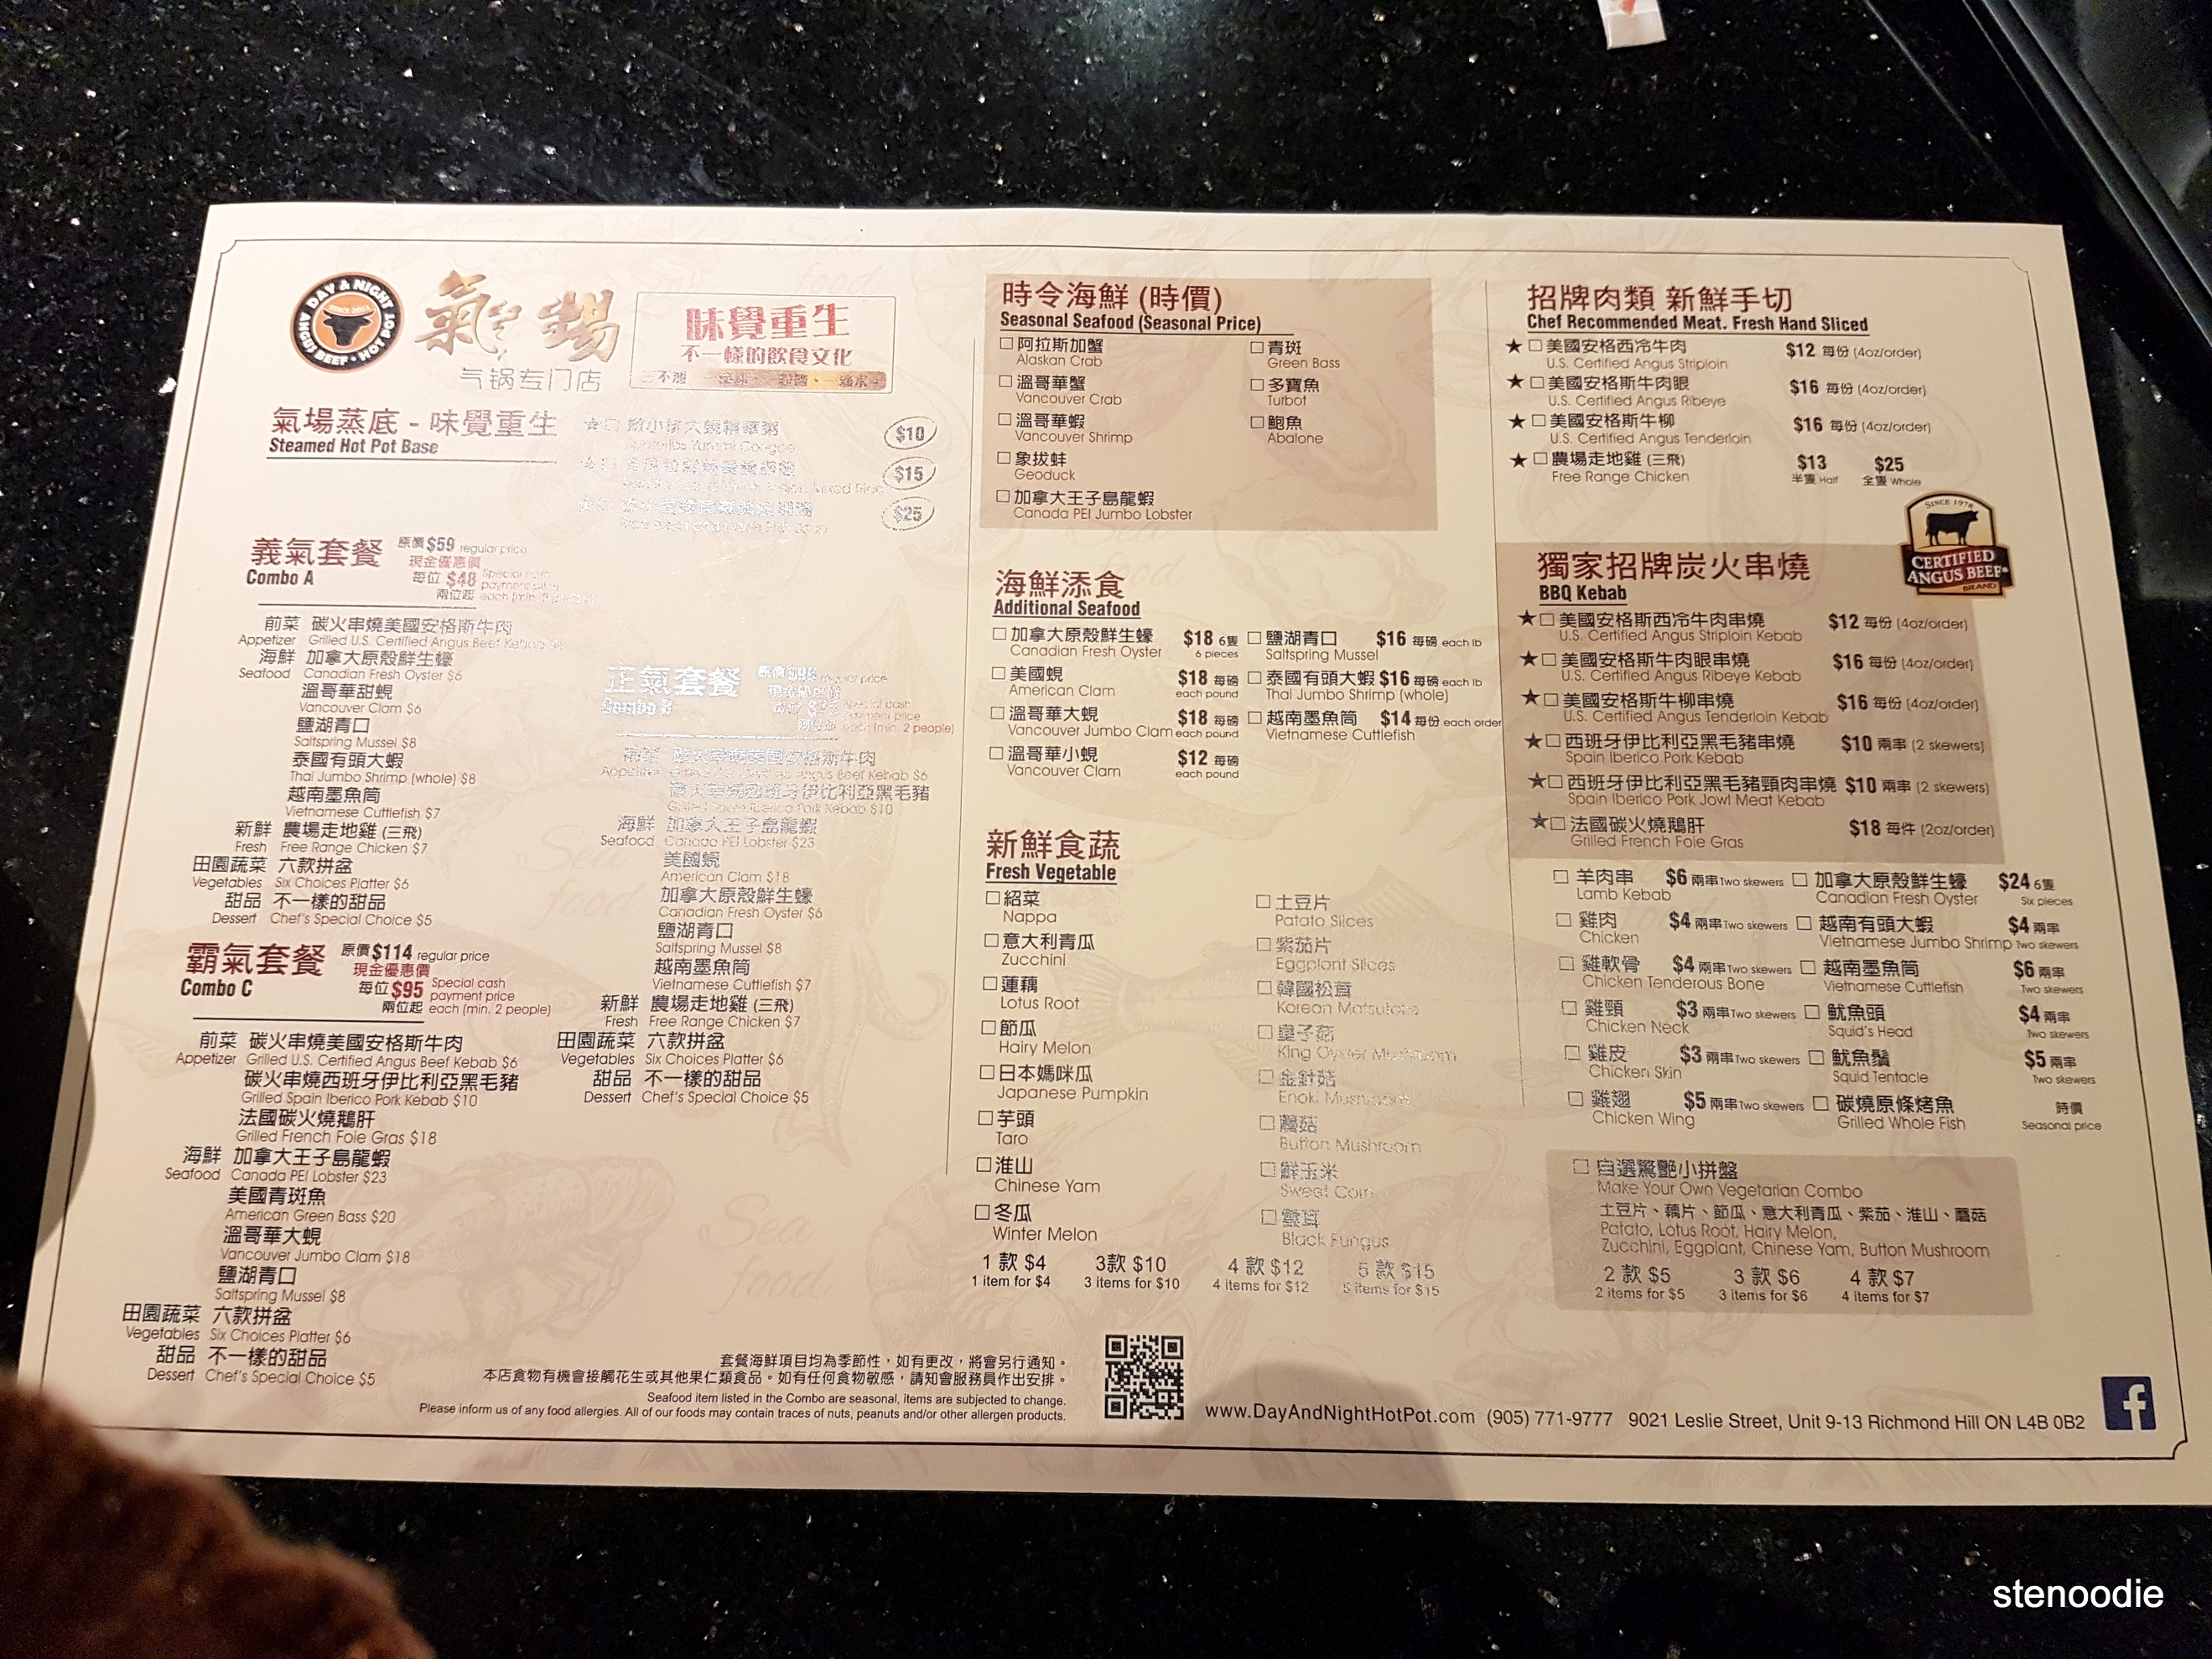 Day & Night Angus Beef Hot Pot menu and prices